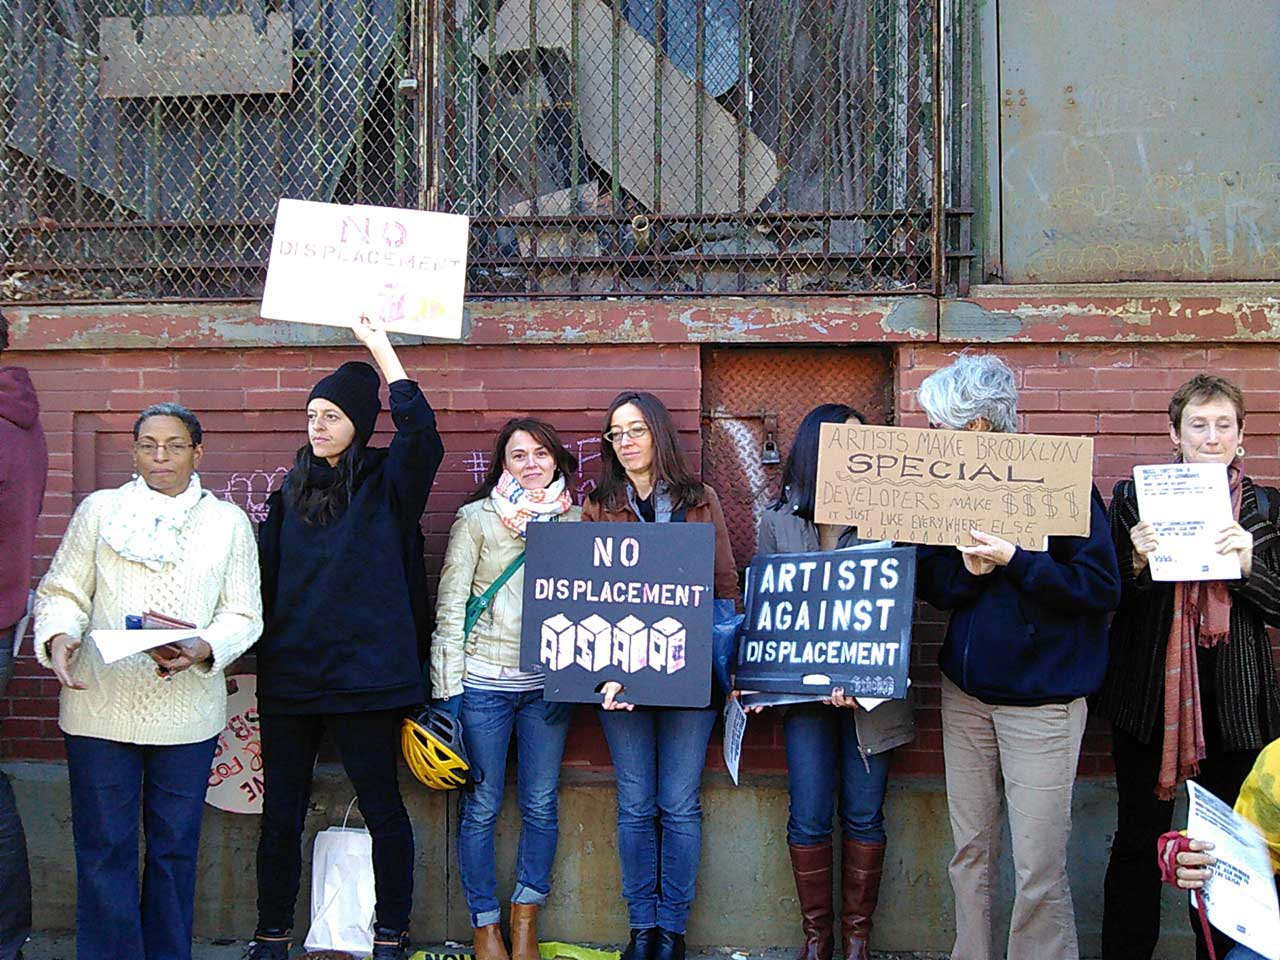 Protesters in Gowanus on the morning of Saturday, October 17, 2015 (all photos by the author for Hyperallergic)